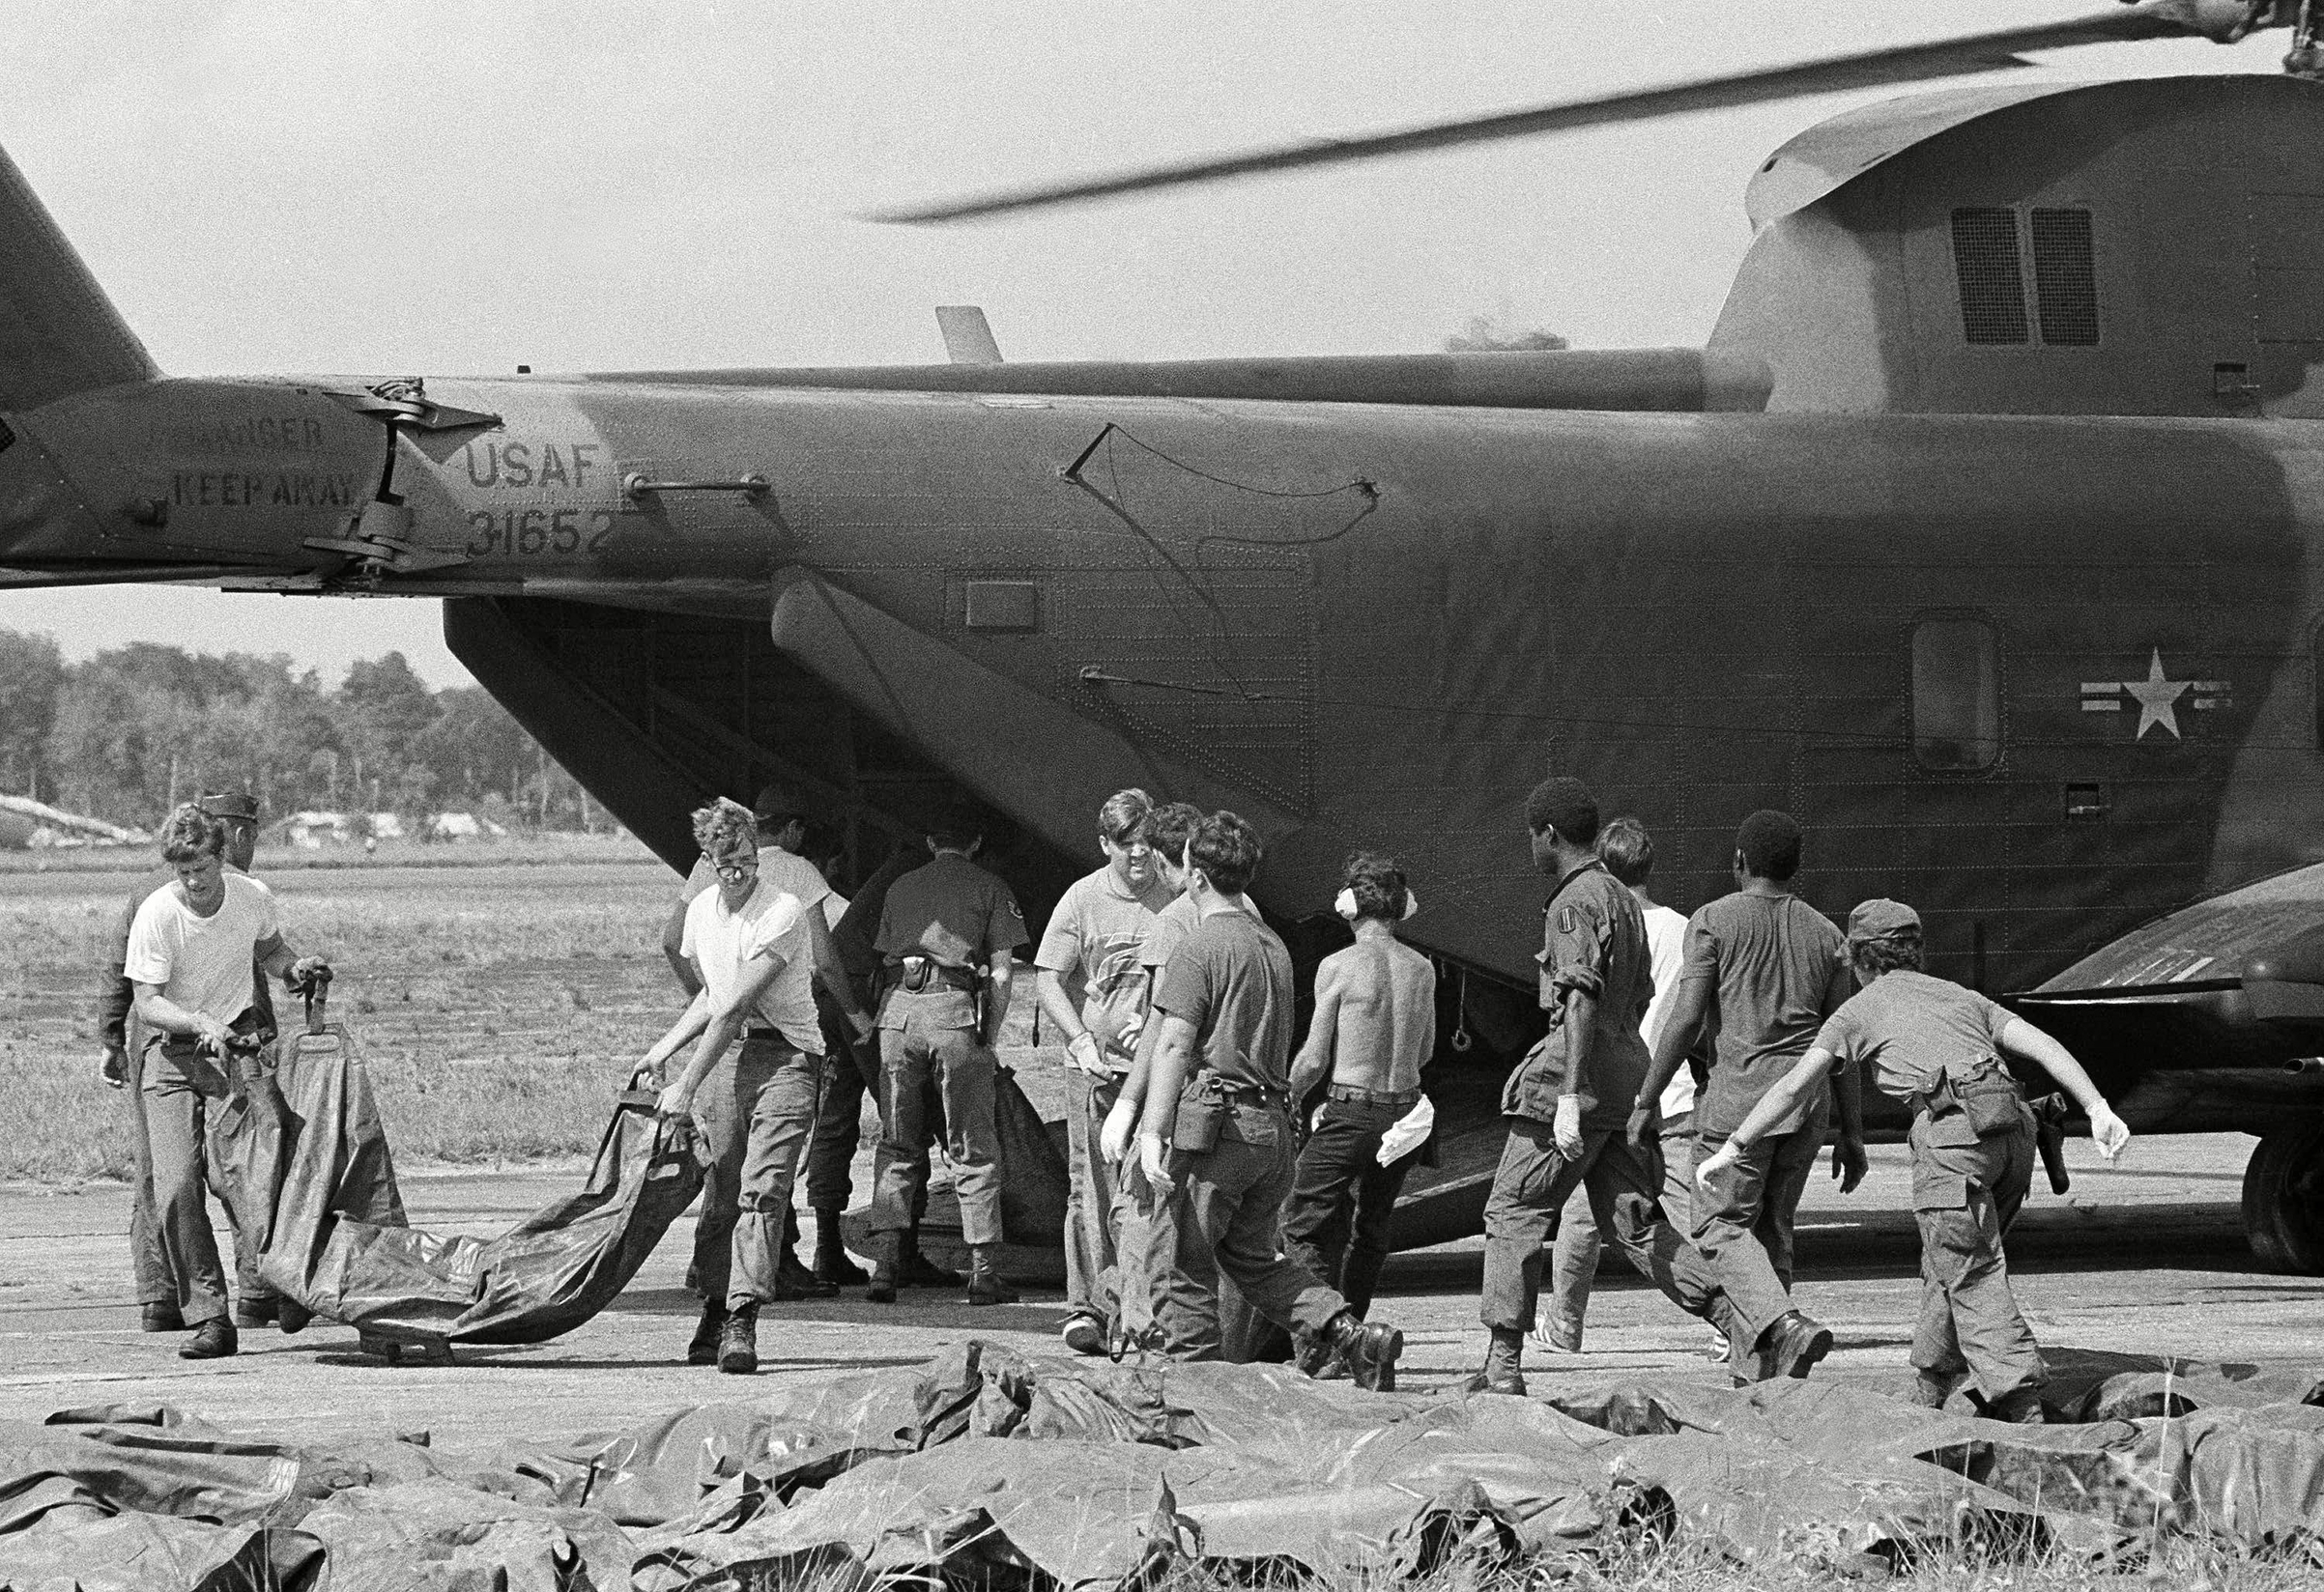 Bodies of victims of Jonestown mass suicide are loaded from U.S. military helicopter at Georgetown's international airport. The corpses, in body bags, will be transferred to shipping containers for the flight back to the U.S.